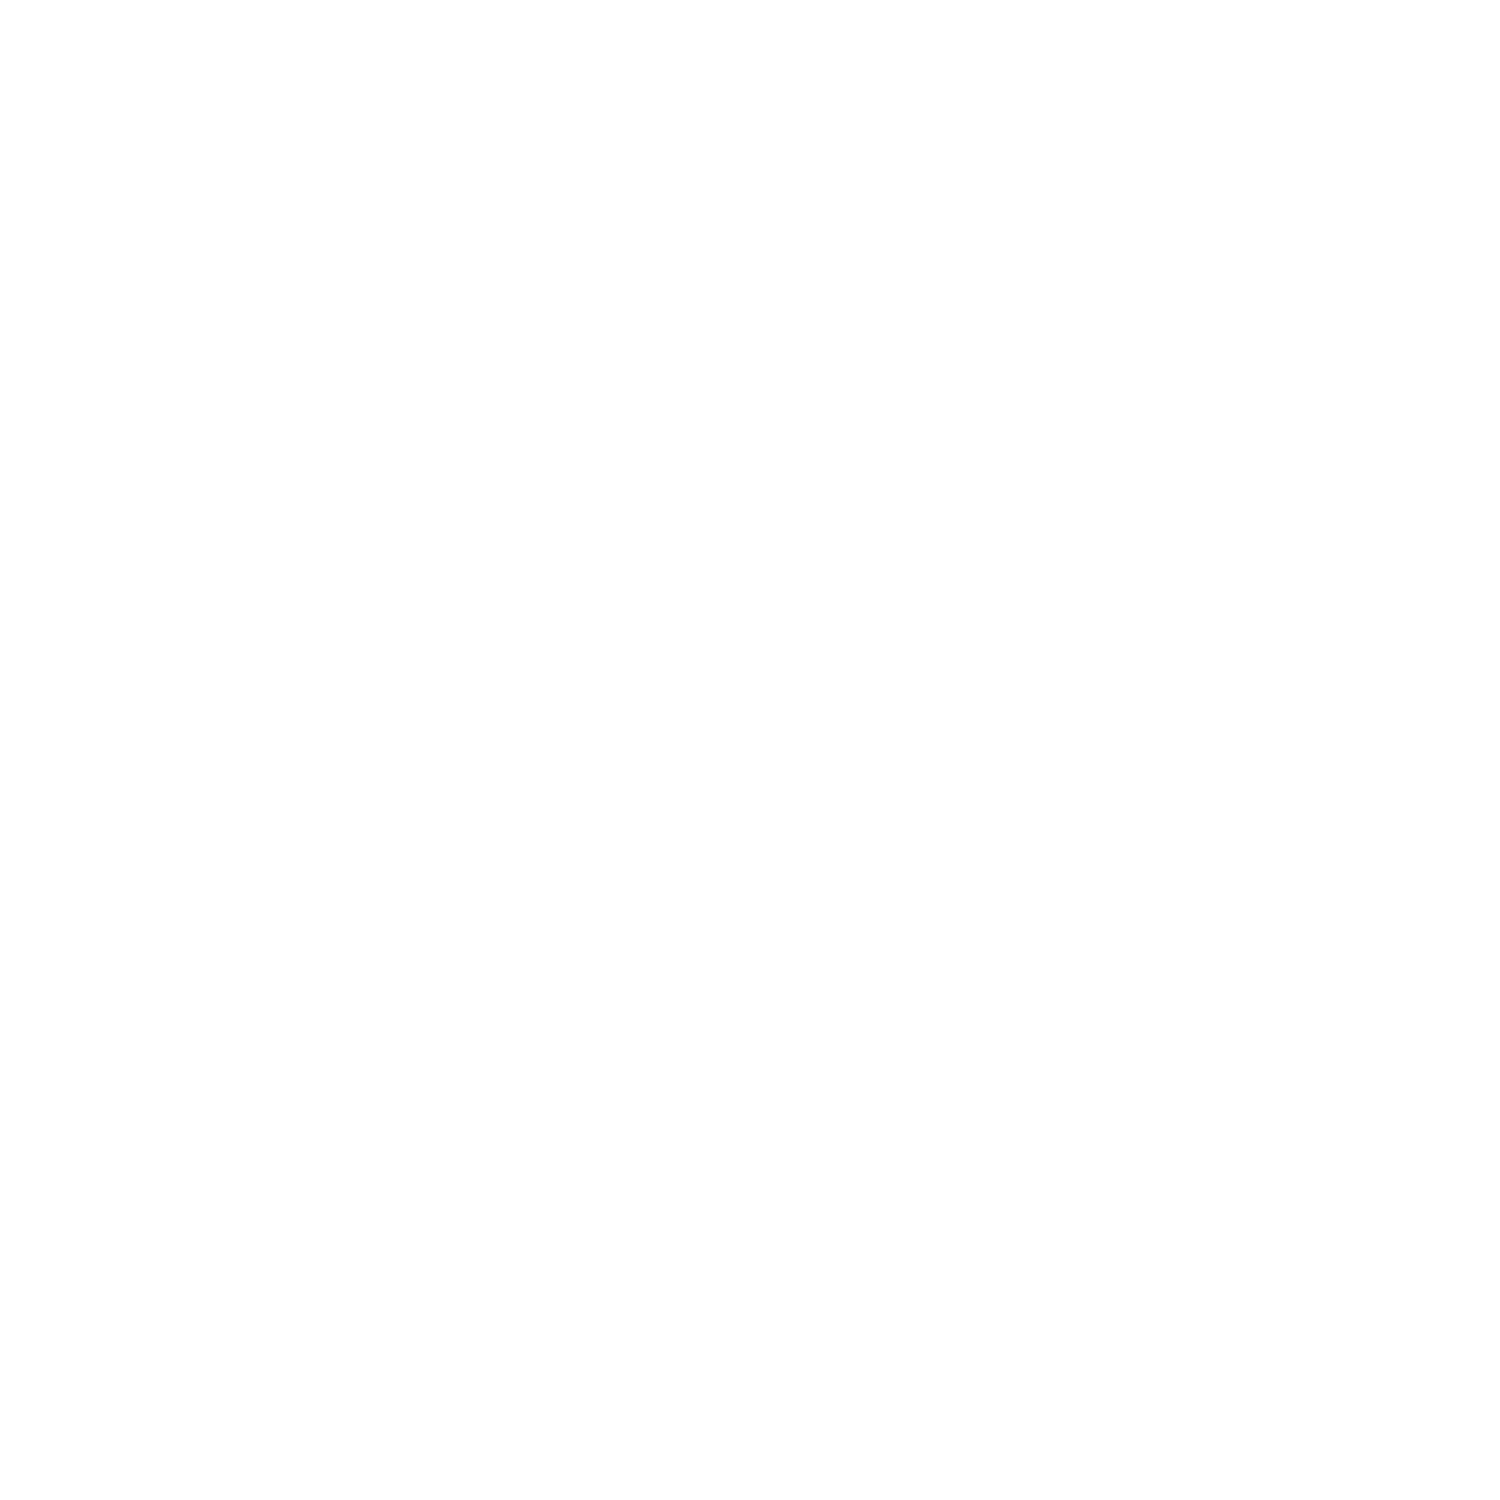 Ronan Blake - Ottawa Family Lawyer